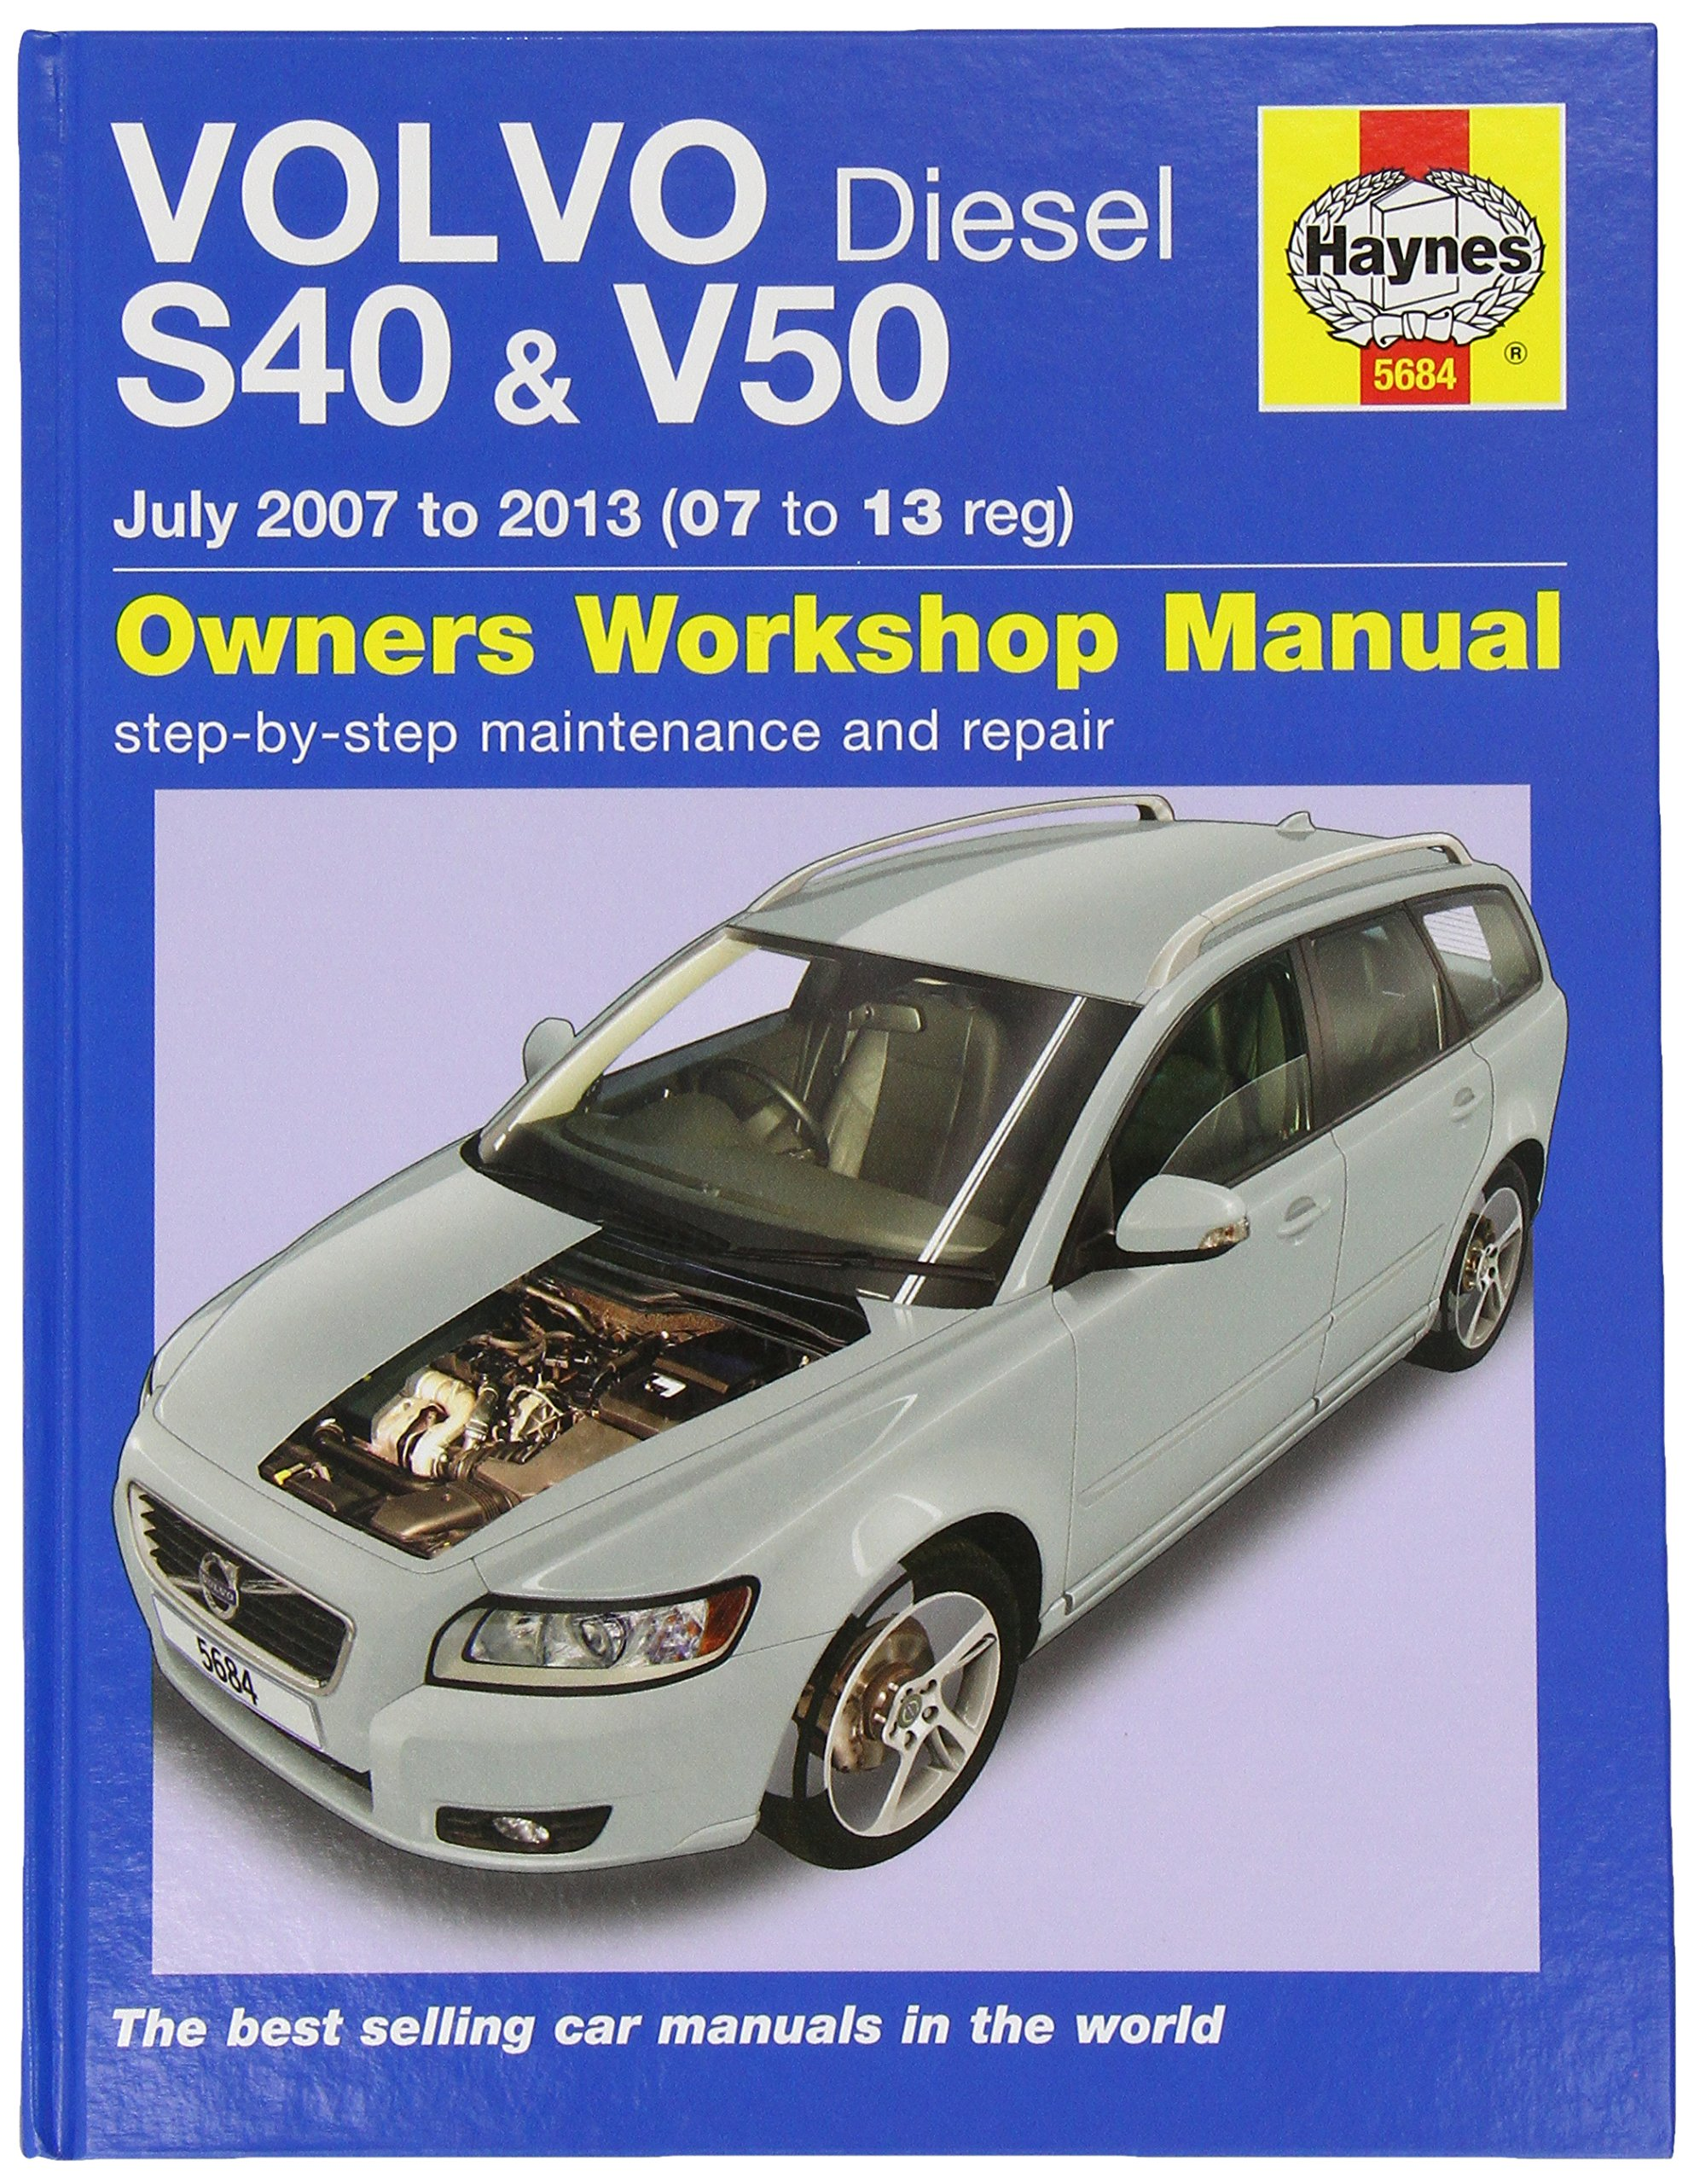 volvo v40 1999 manual pdf user guide manual that easy to read